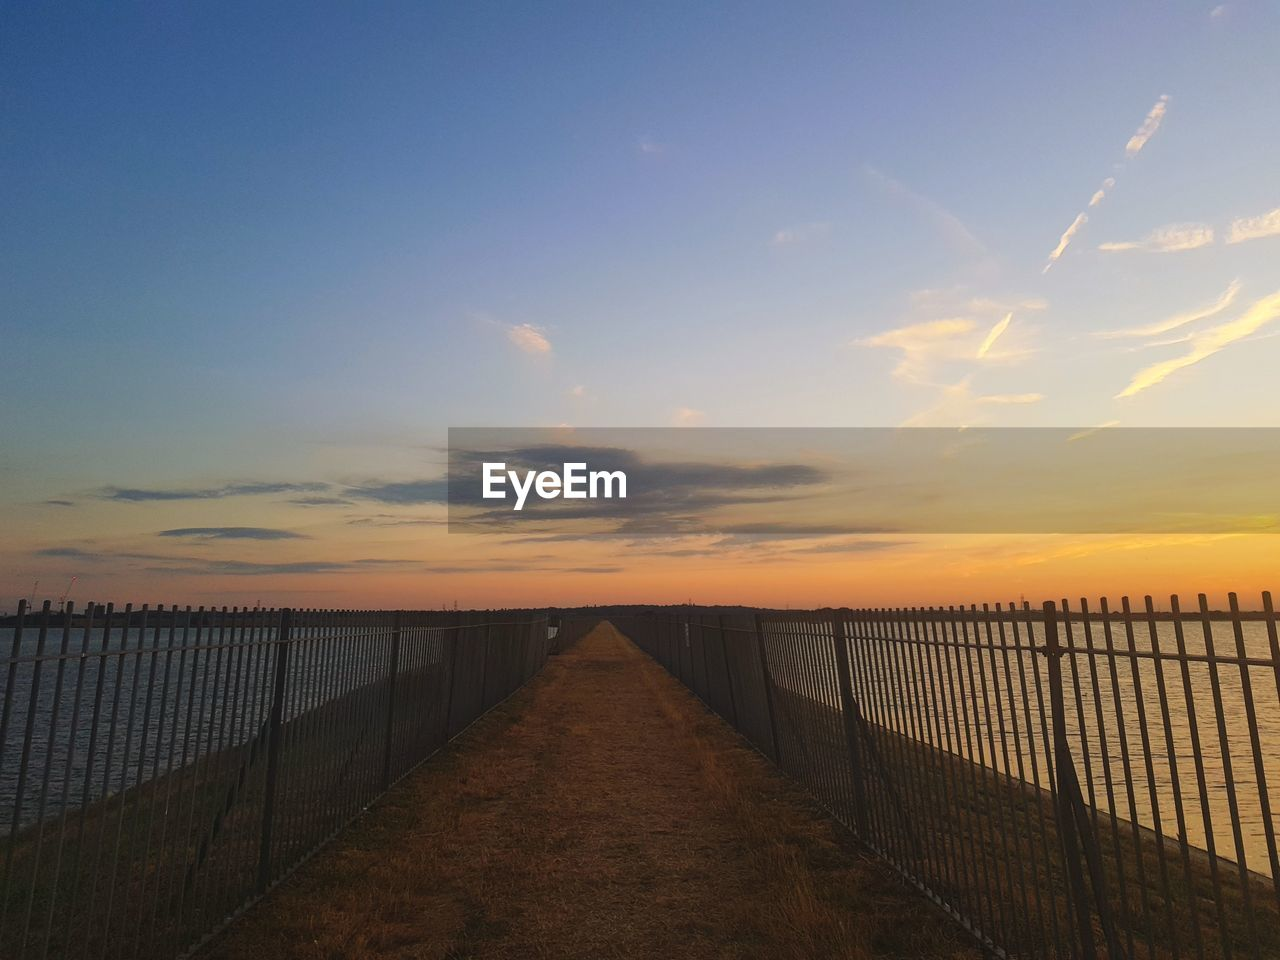 sky, sunset, the way forward, direction, beauty in nature, tranquil scene, nature, tranquility, scenics - nature, cloud - sky, connection, diminishing perspective, fence, railing, water, barrier, sea, no people, protection, outdoors